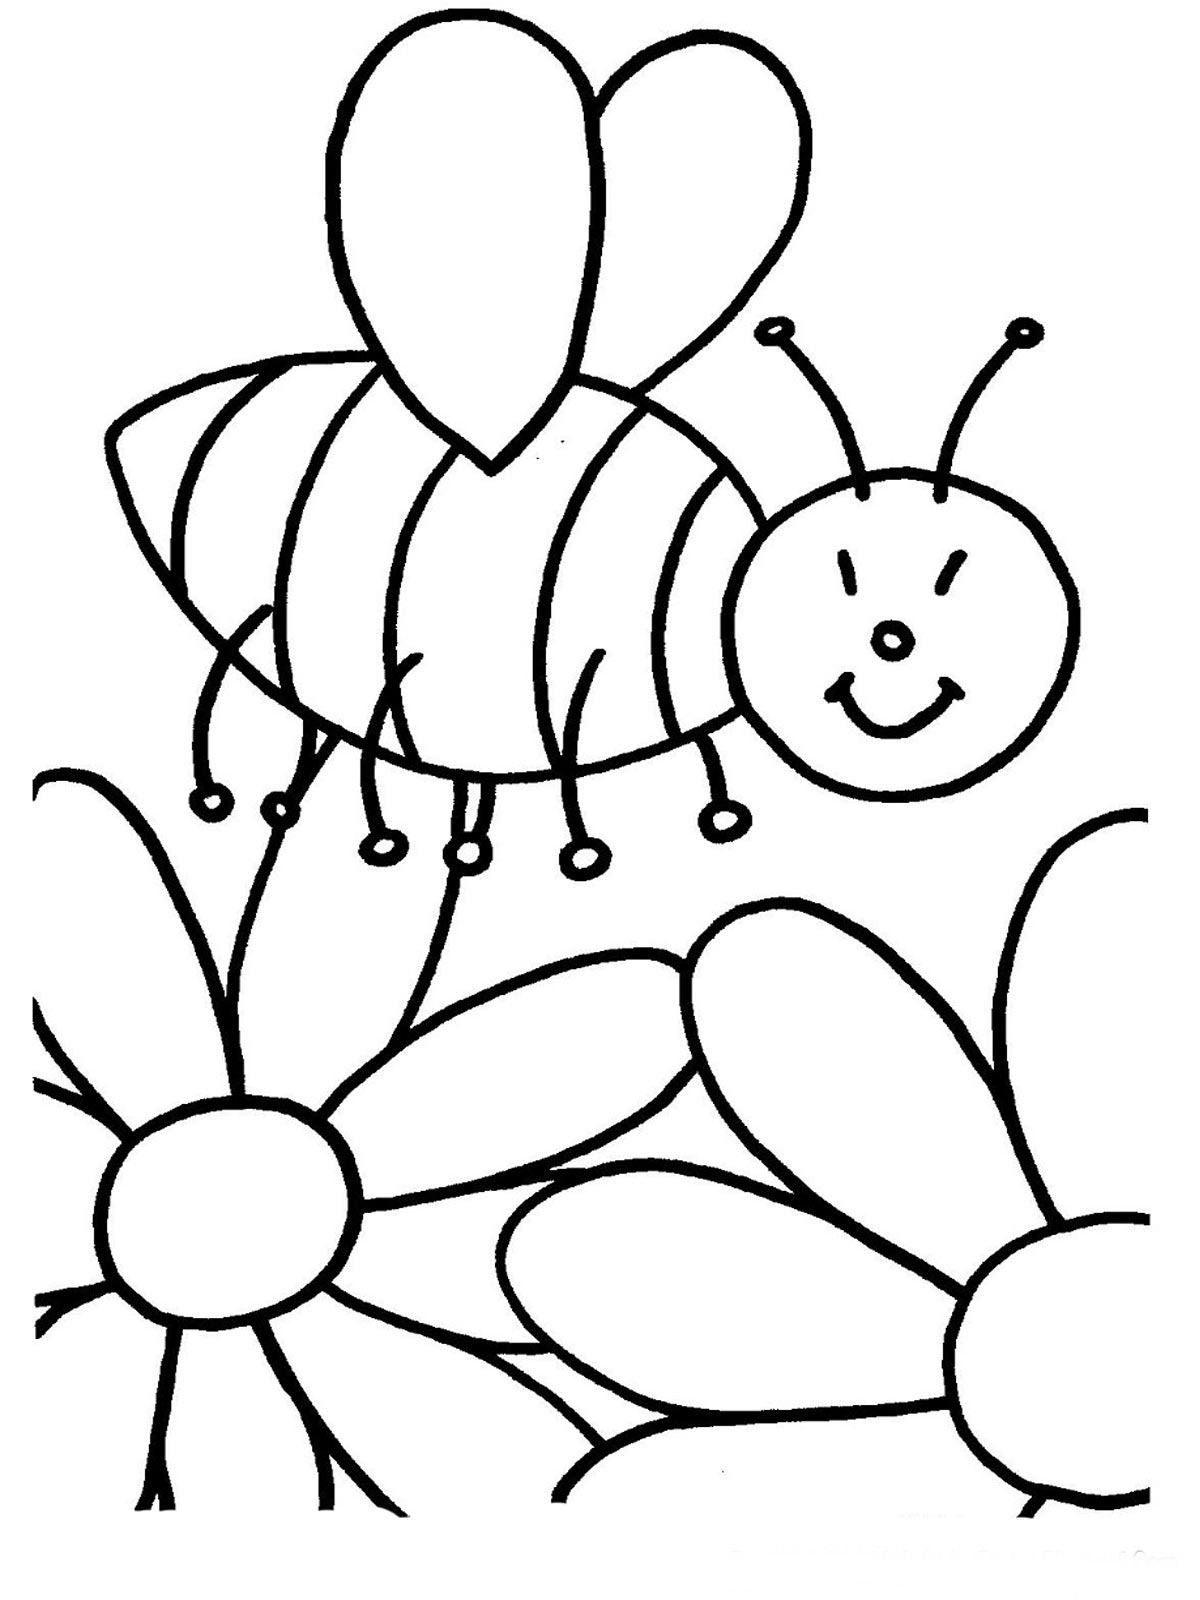 Printables Coloring Worksheets Printable 1000 images about coloring pages on pinterest disney and for kids